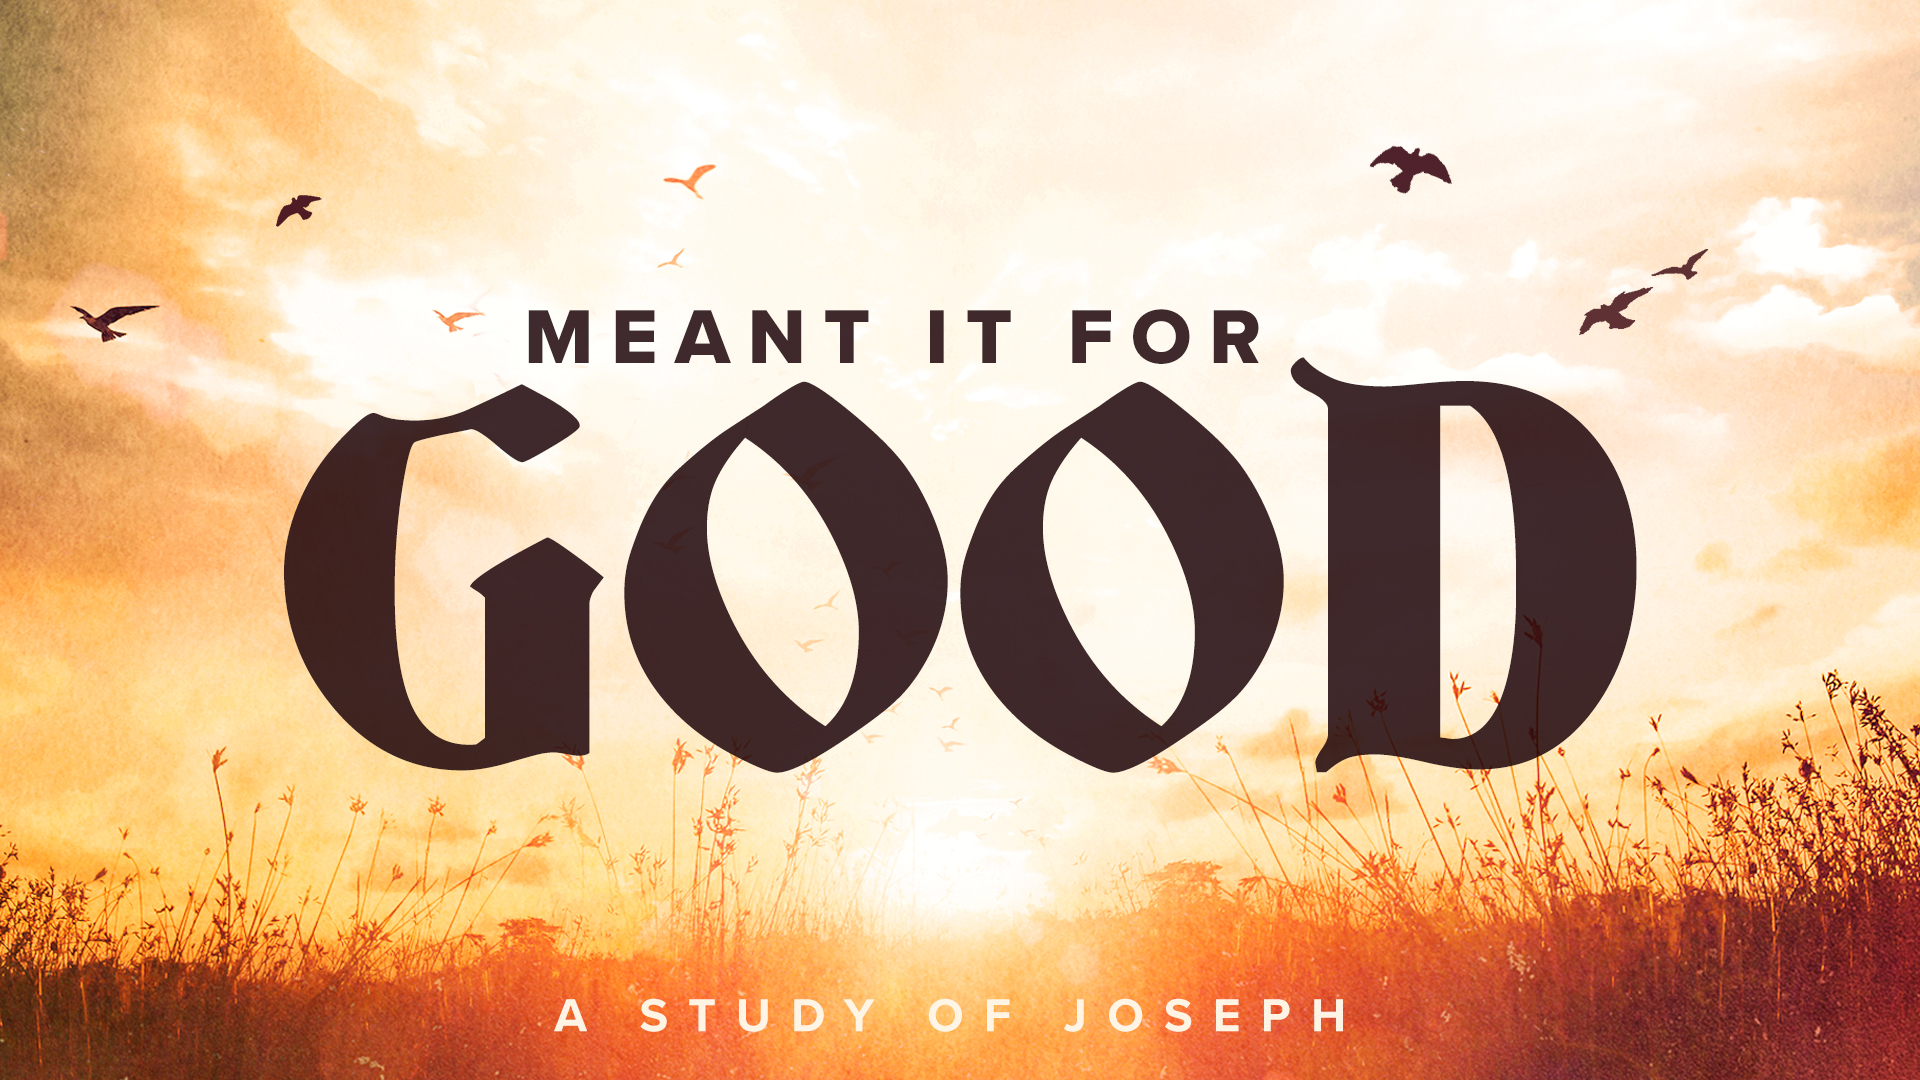 Meant It For Good [3]: The Path To Success